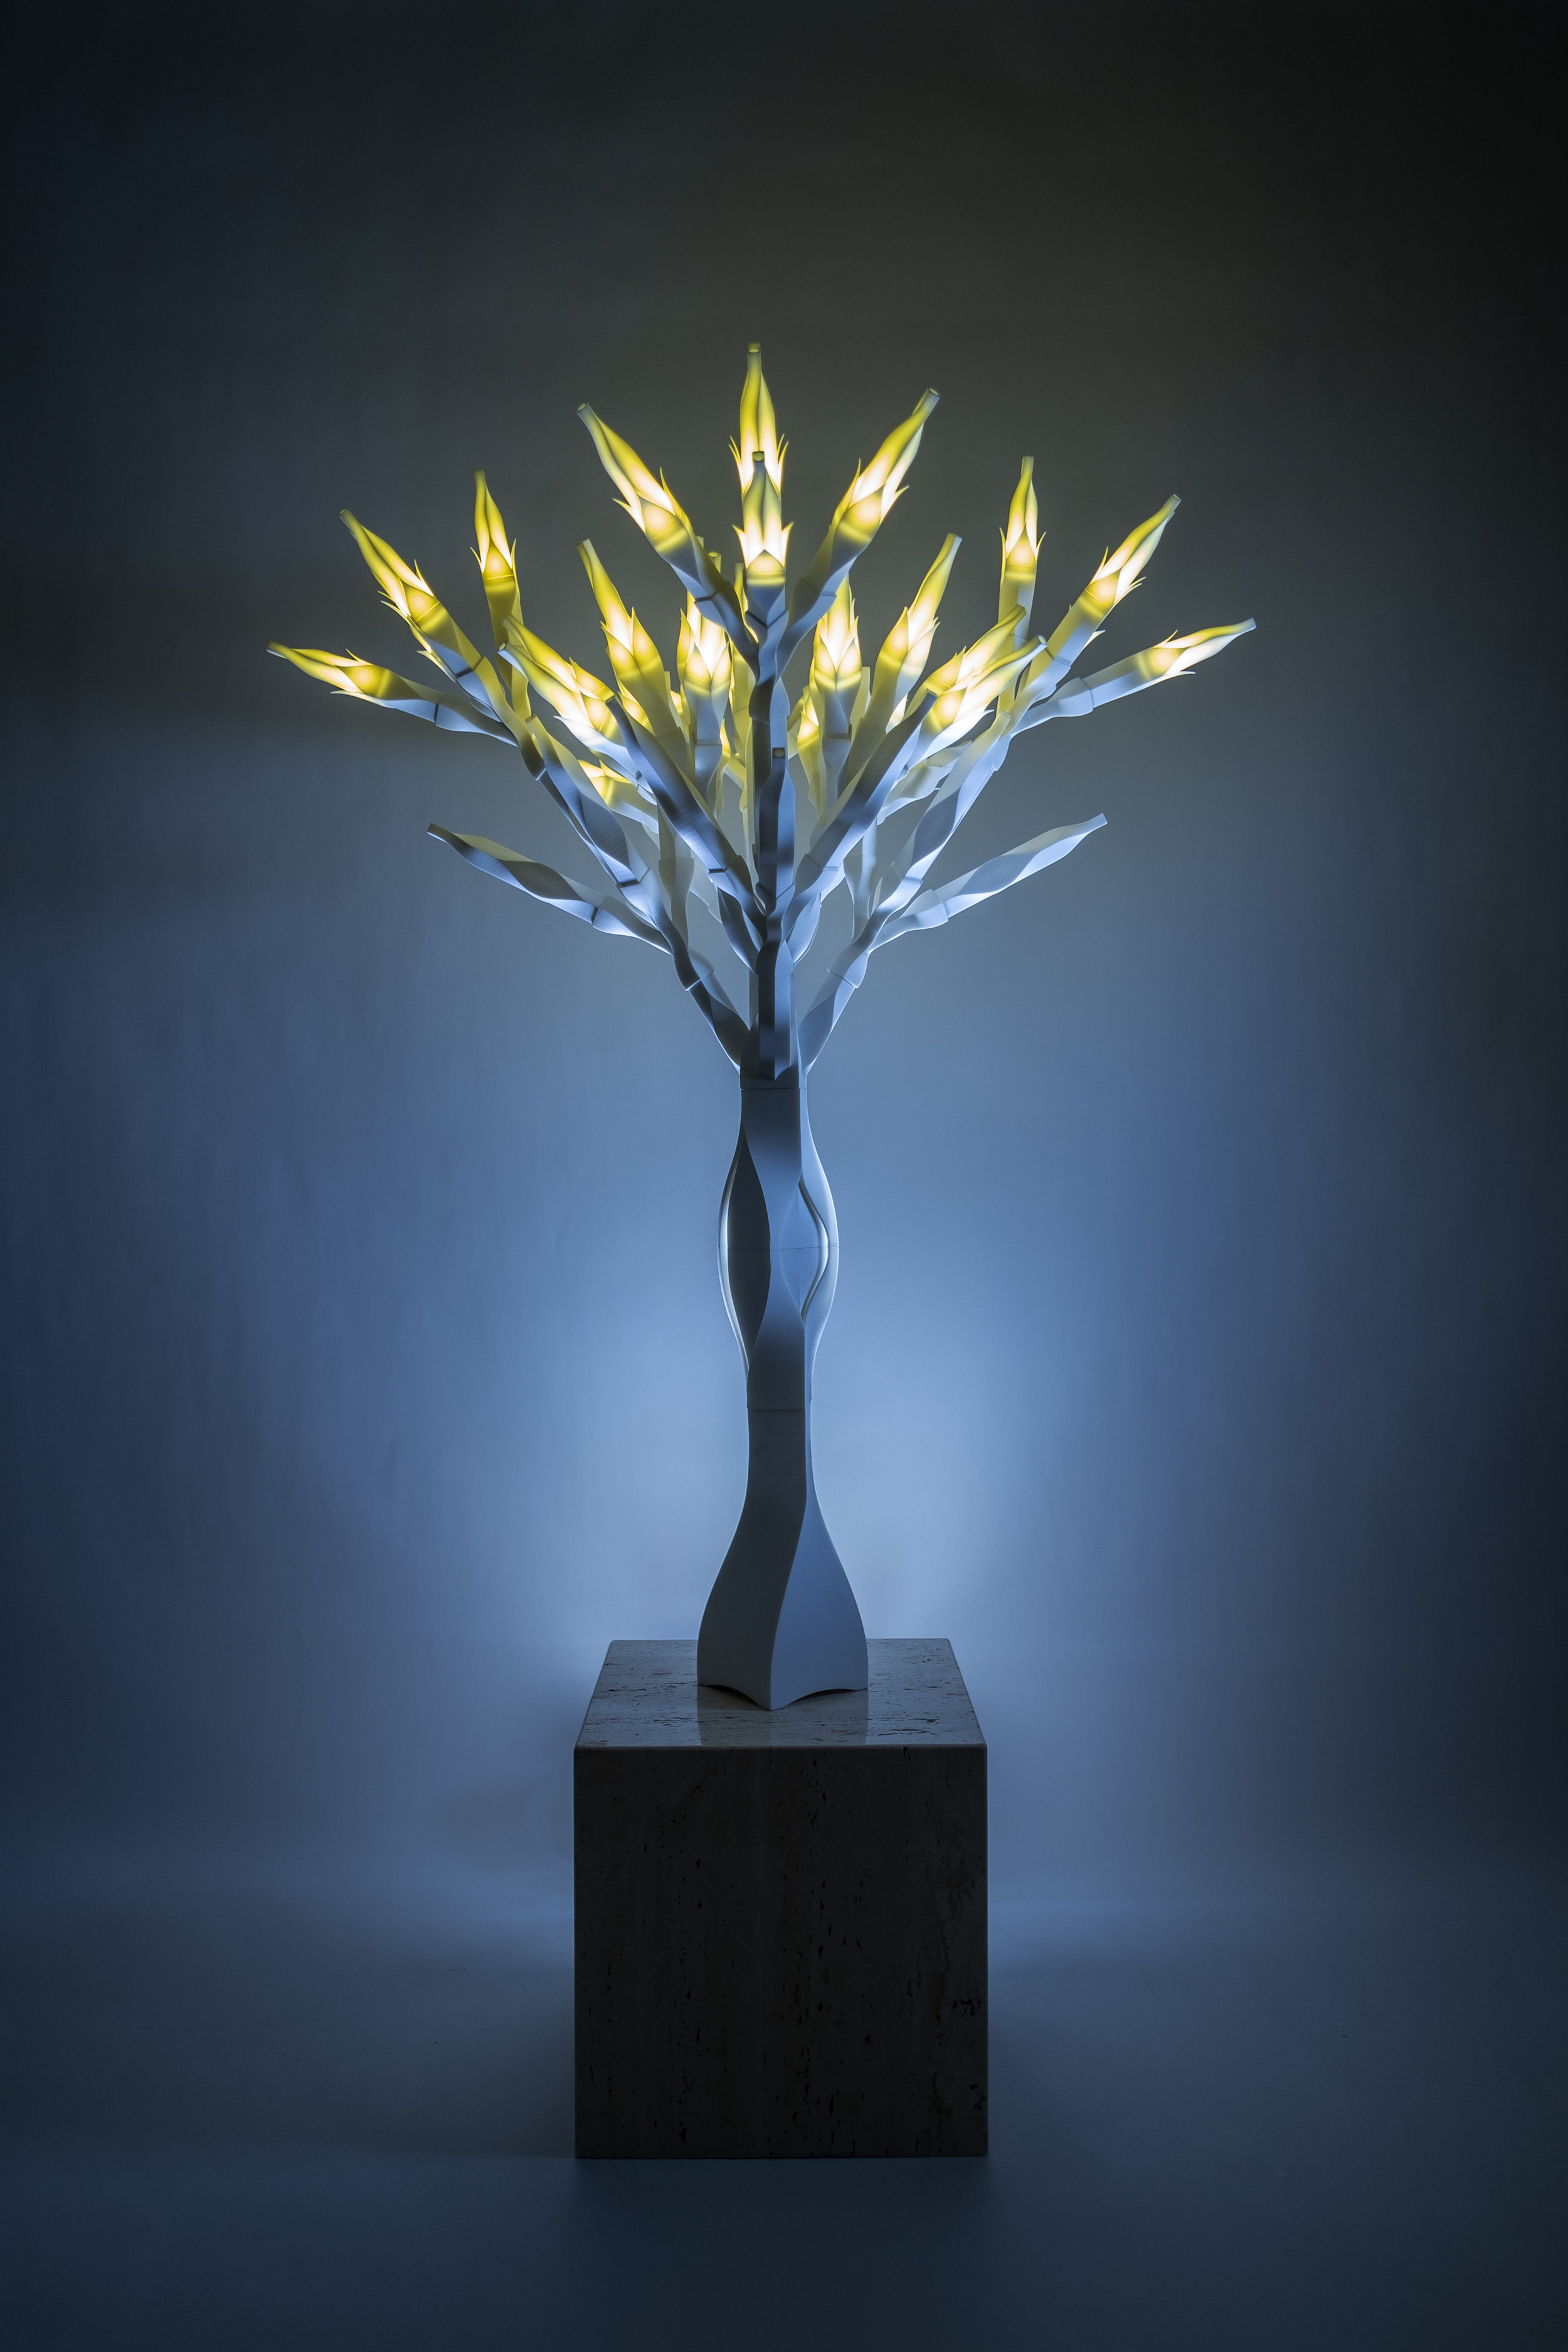 081015 And Tree of Life Compositional Study Four: Infinite Symmetree,  2015, Hand dyed polyamide, wires, LED lights, aluminum pipe, 57 x 36 x 36 inches    INQUIRE